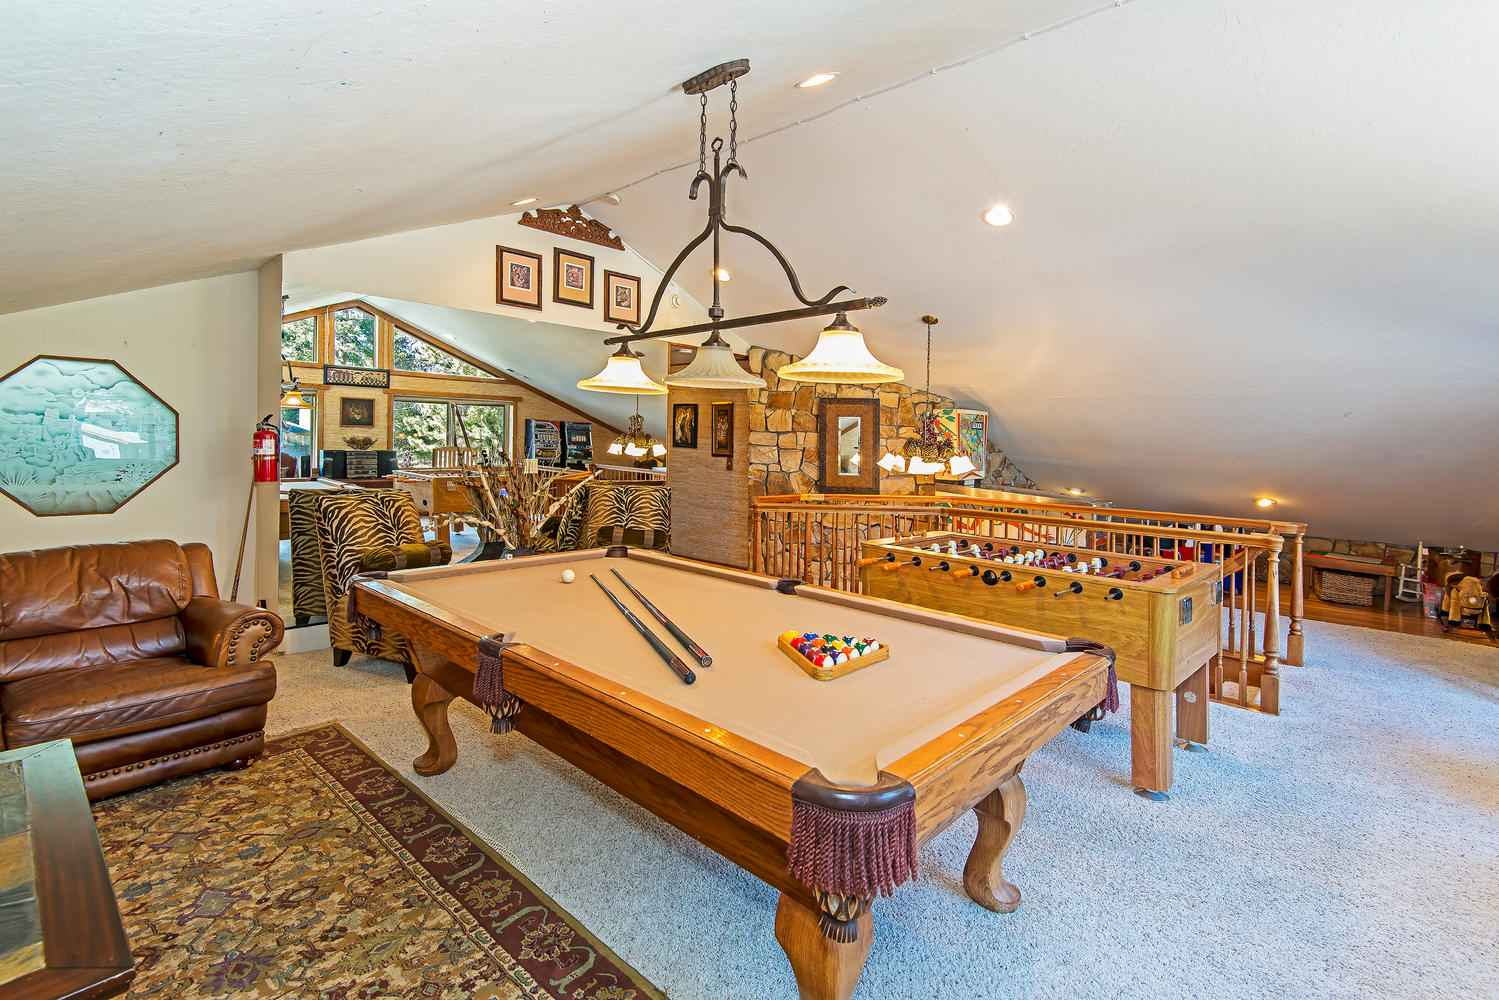 prop_2670_1551744449_7_bedroom_on_golf_course_w_indoor_pool.jpg